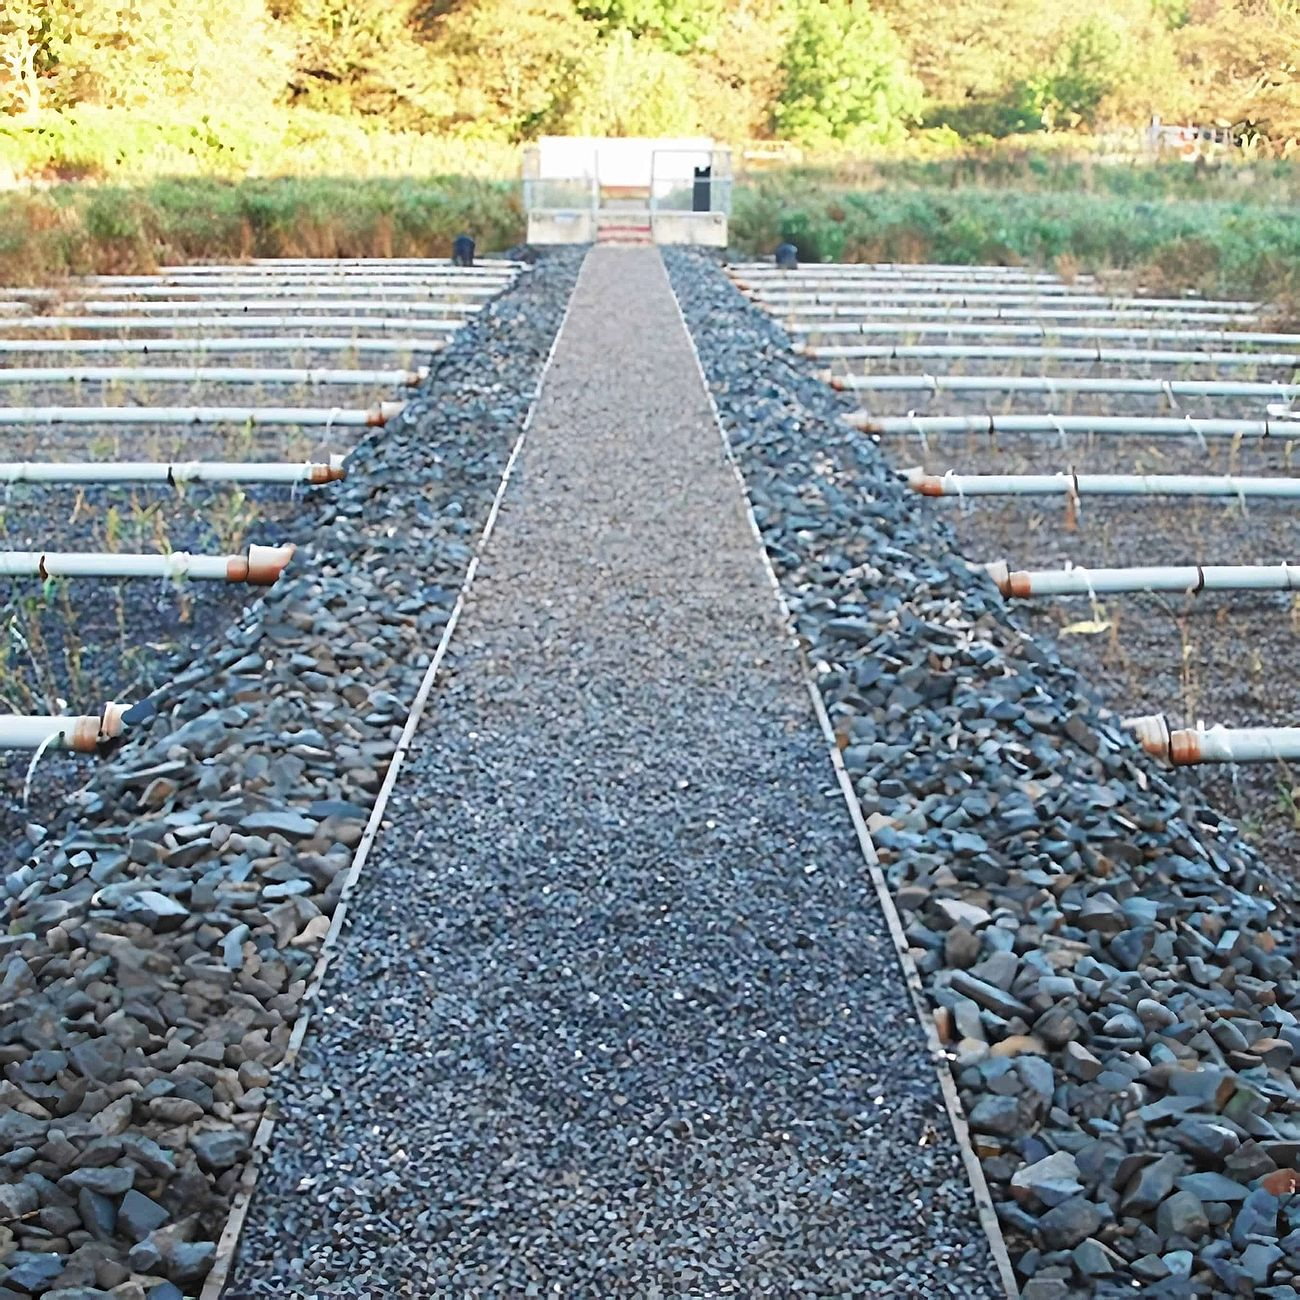 Crynant Wastewater Treatment Works - Project carried out by Eco~tech Systems in Neath Port Talbot. End result.